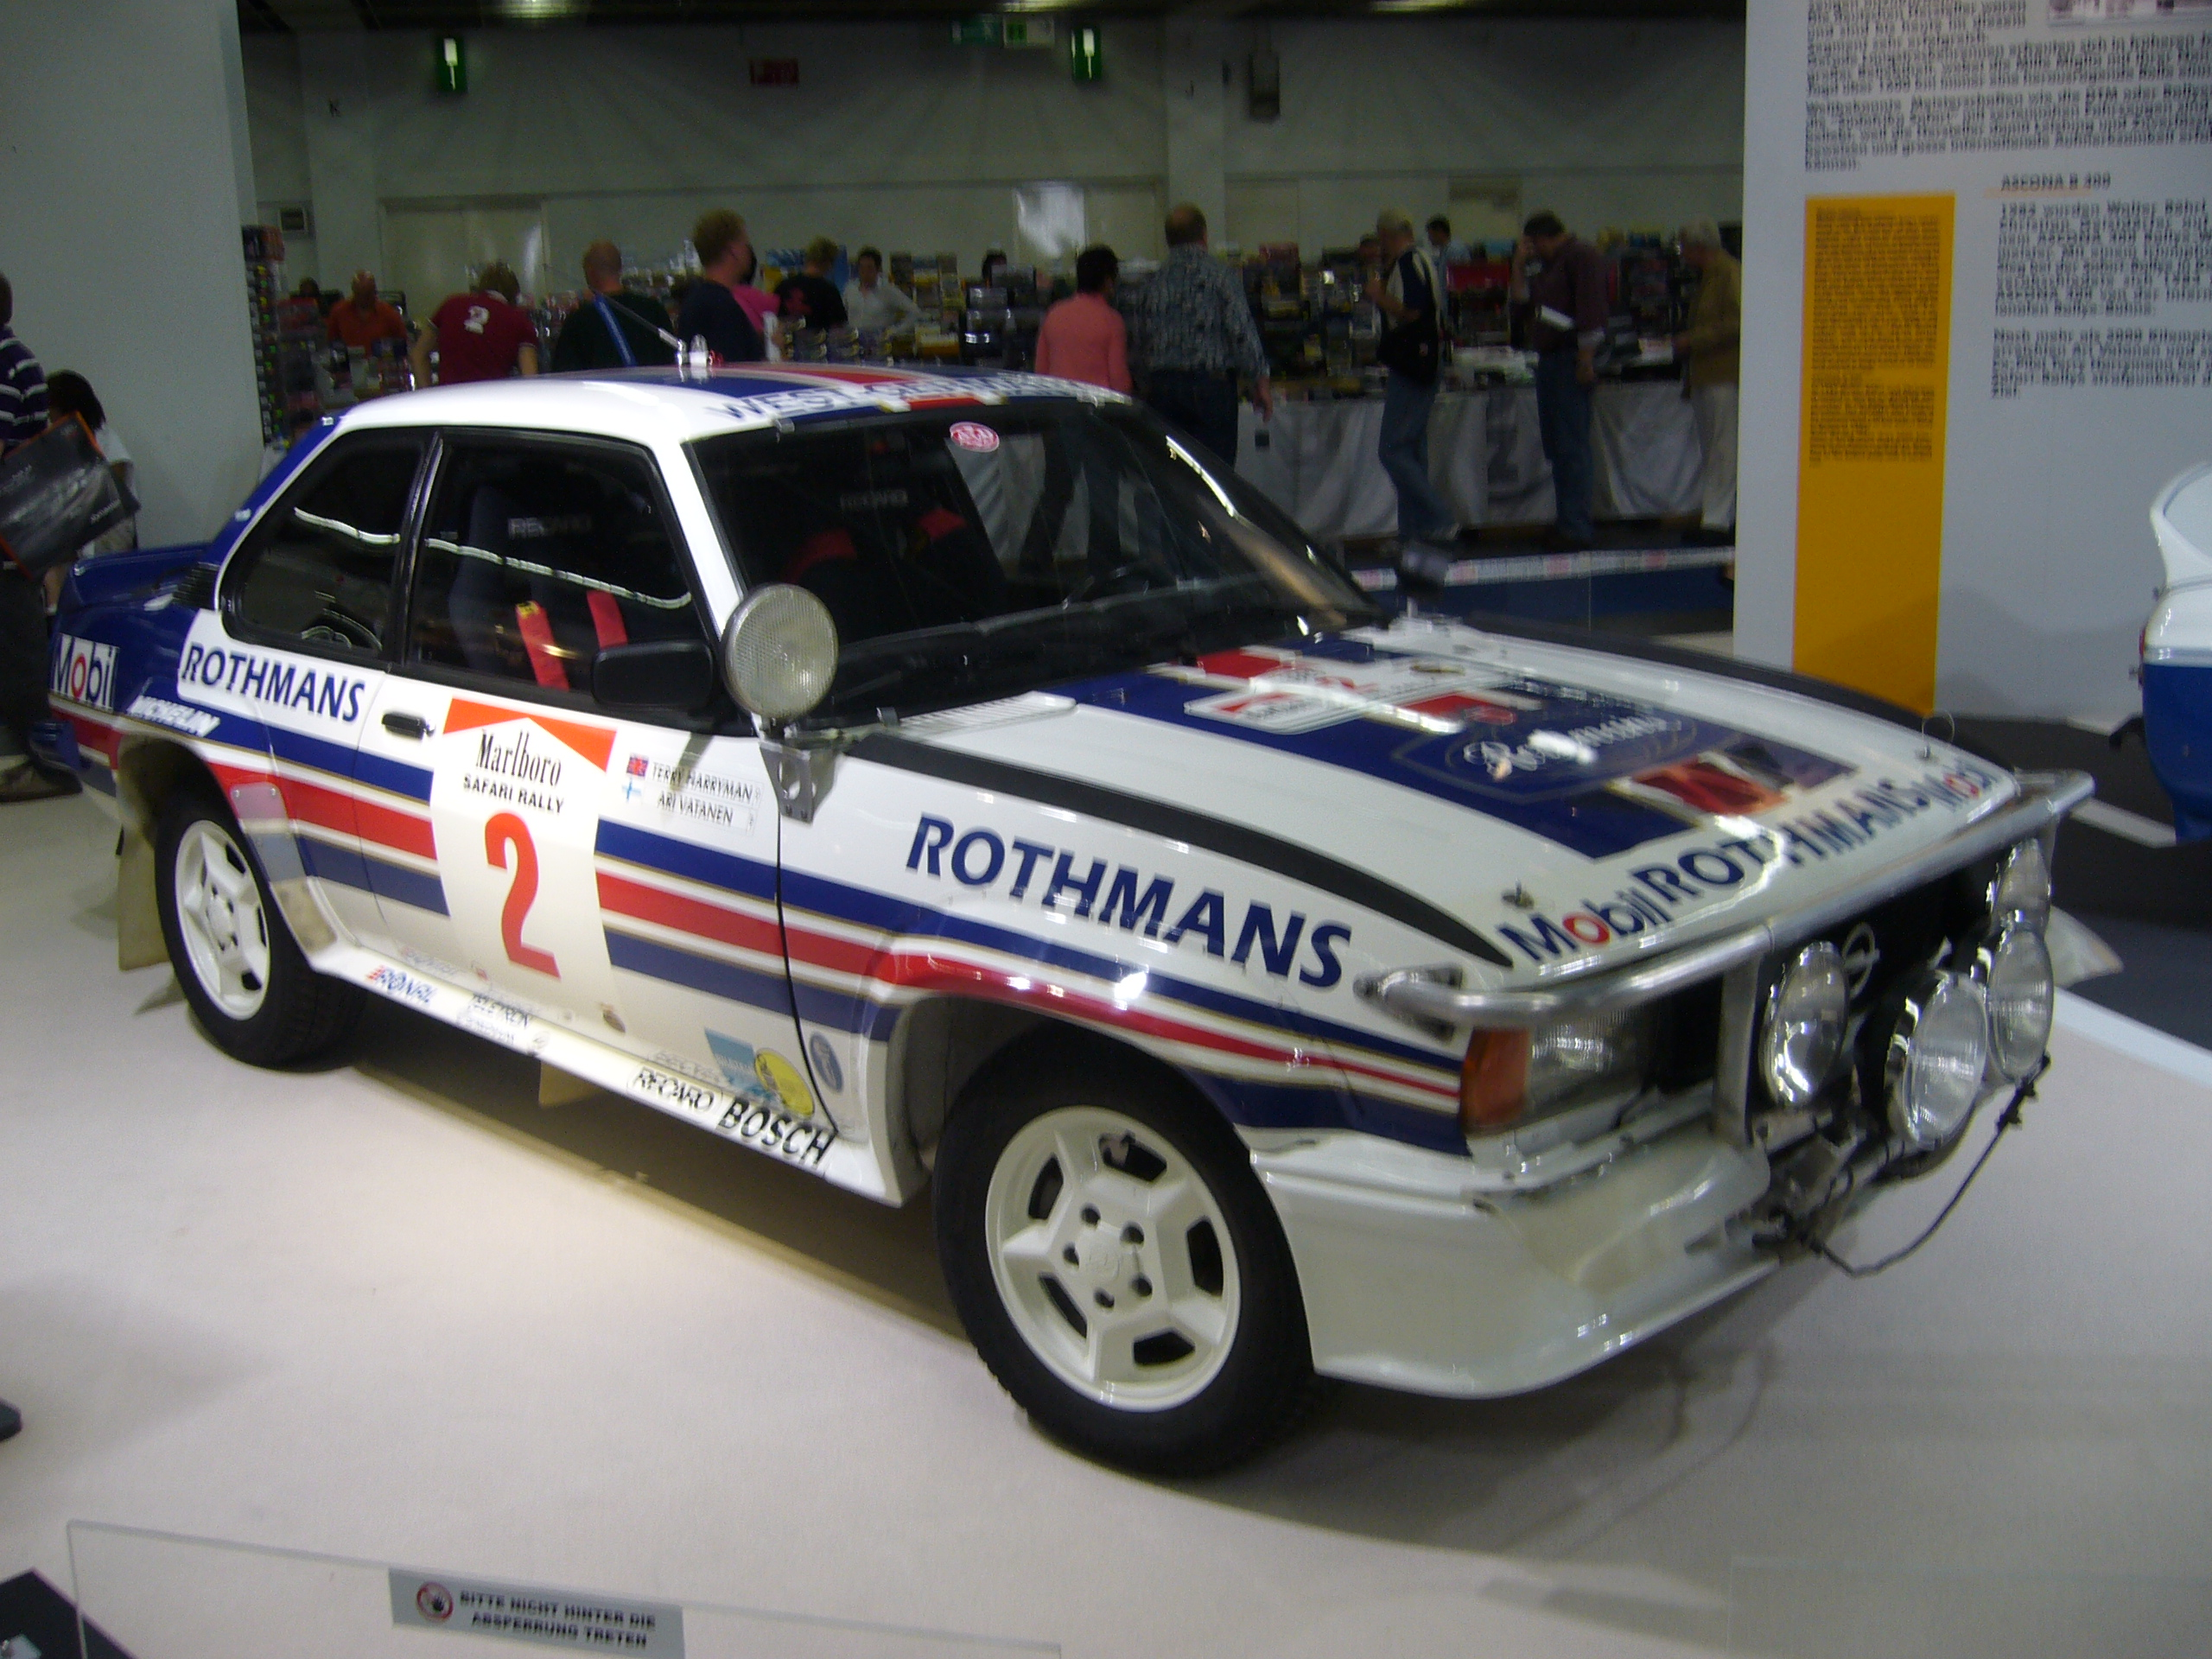 http://upload.wikimedia.org/wikipedia/commons/1/15/Opel_Ascona_Rallye_Rothmans.JPG